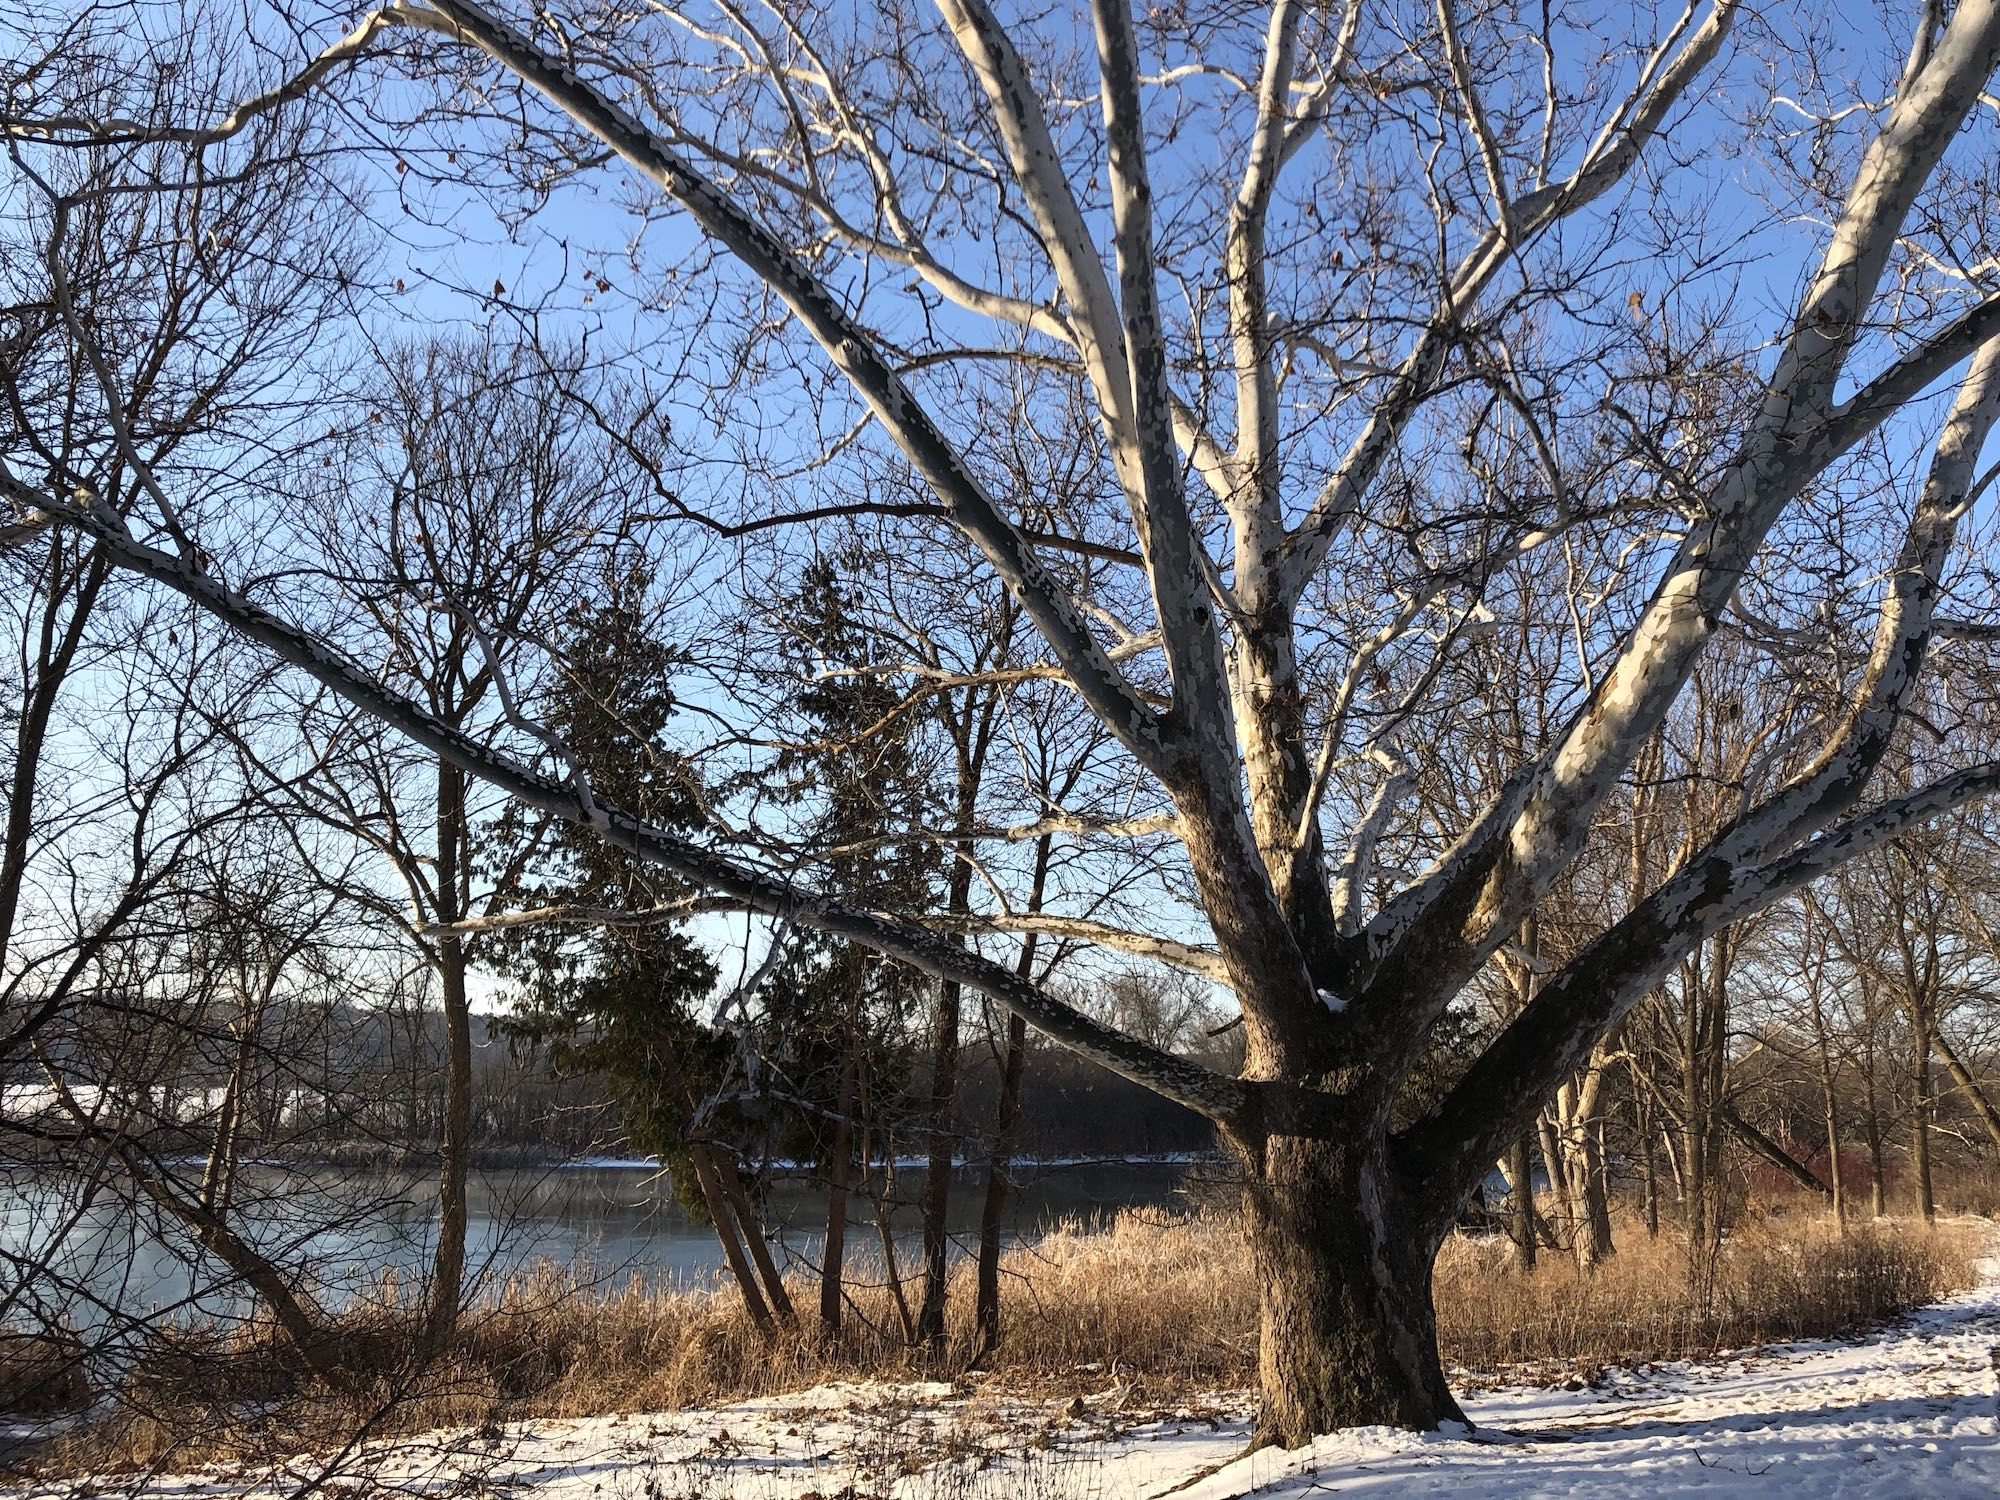 Sycamore tree between Ho-Nee-Um Pond and Arbor Drive on north shore of Lake Wingra on March 10, 2018.